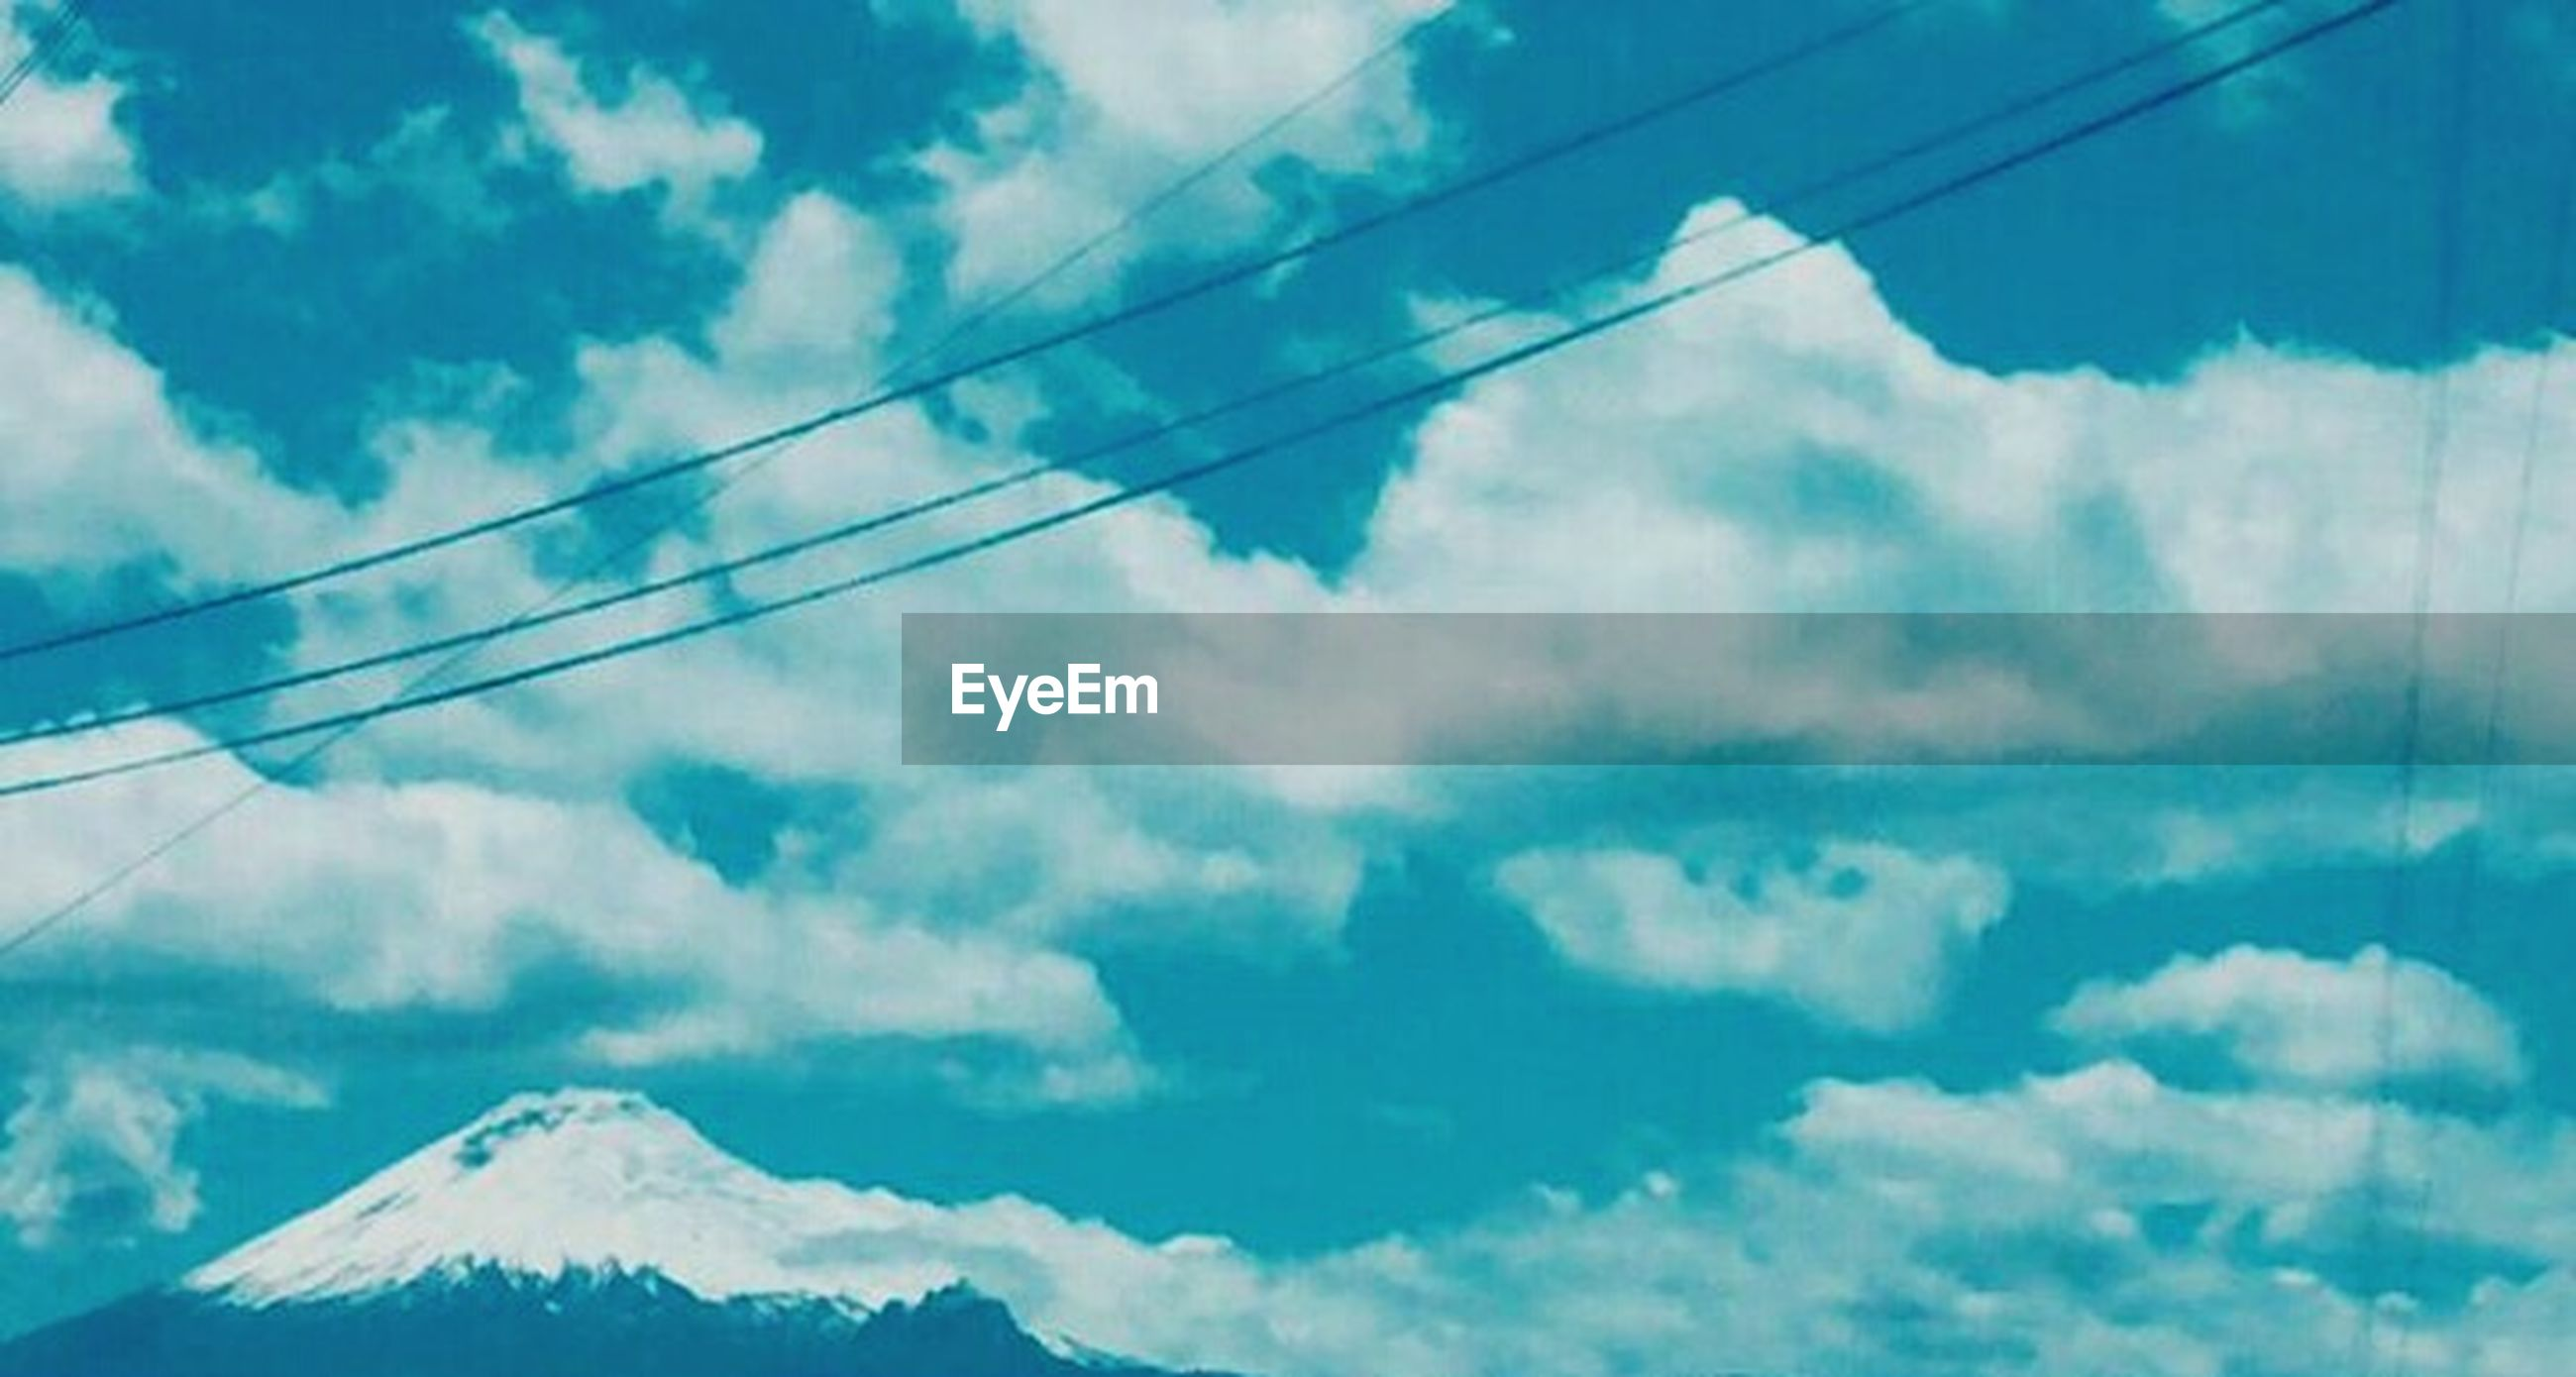 sky, cloud - sky, power line, low angle view, mountain, cable, connection, cloudy, cloud, electricity, tranquility, scenics, beauty in nature, blue, tranquil scene, nature, power supply, electricity pylon, mountain range, weather